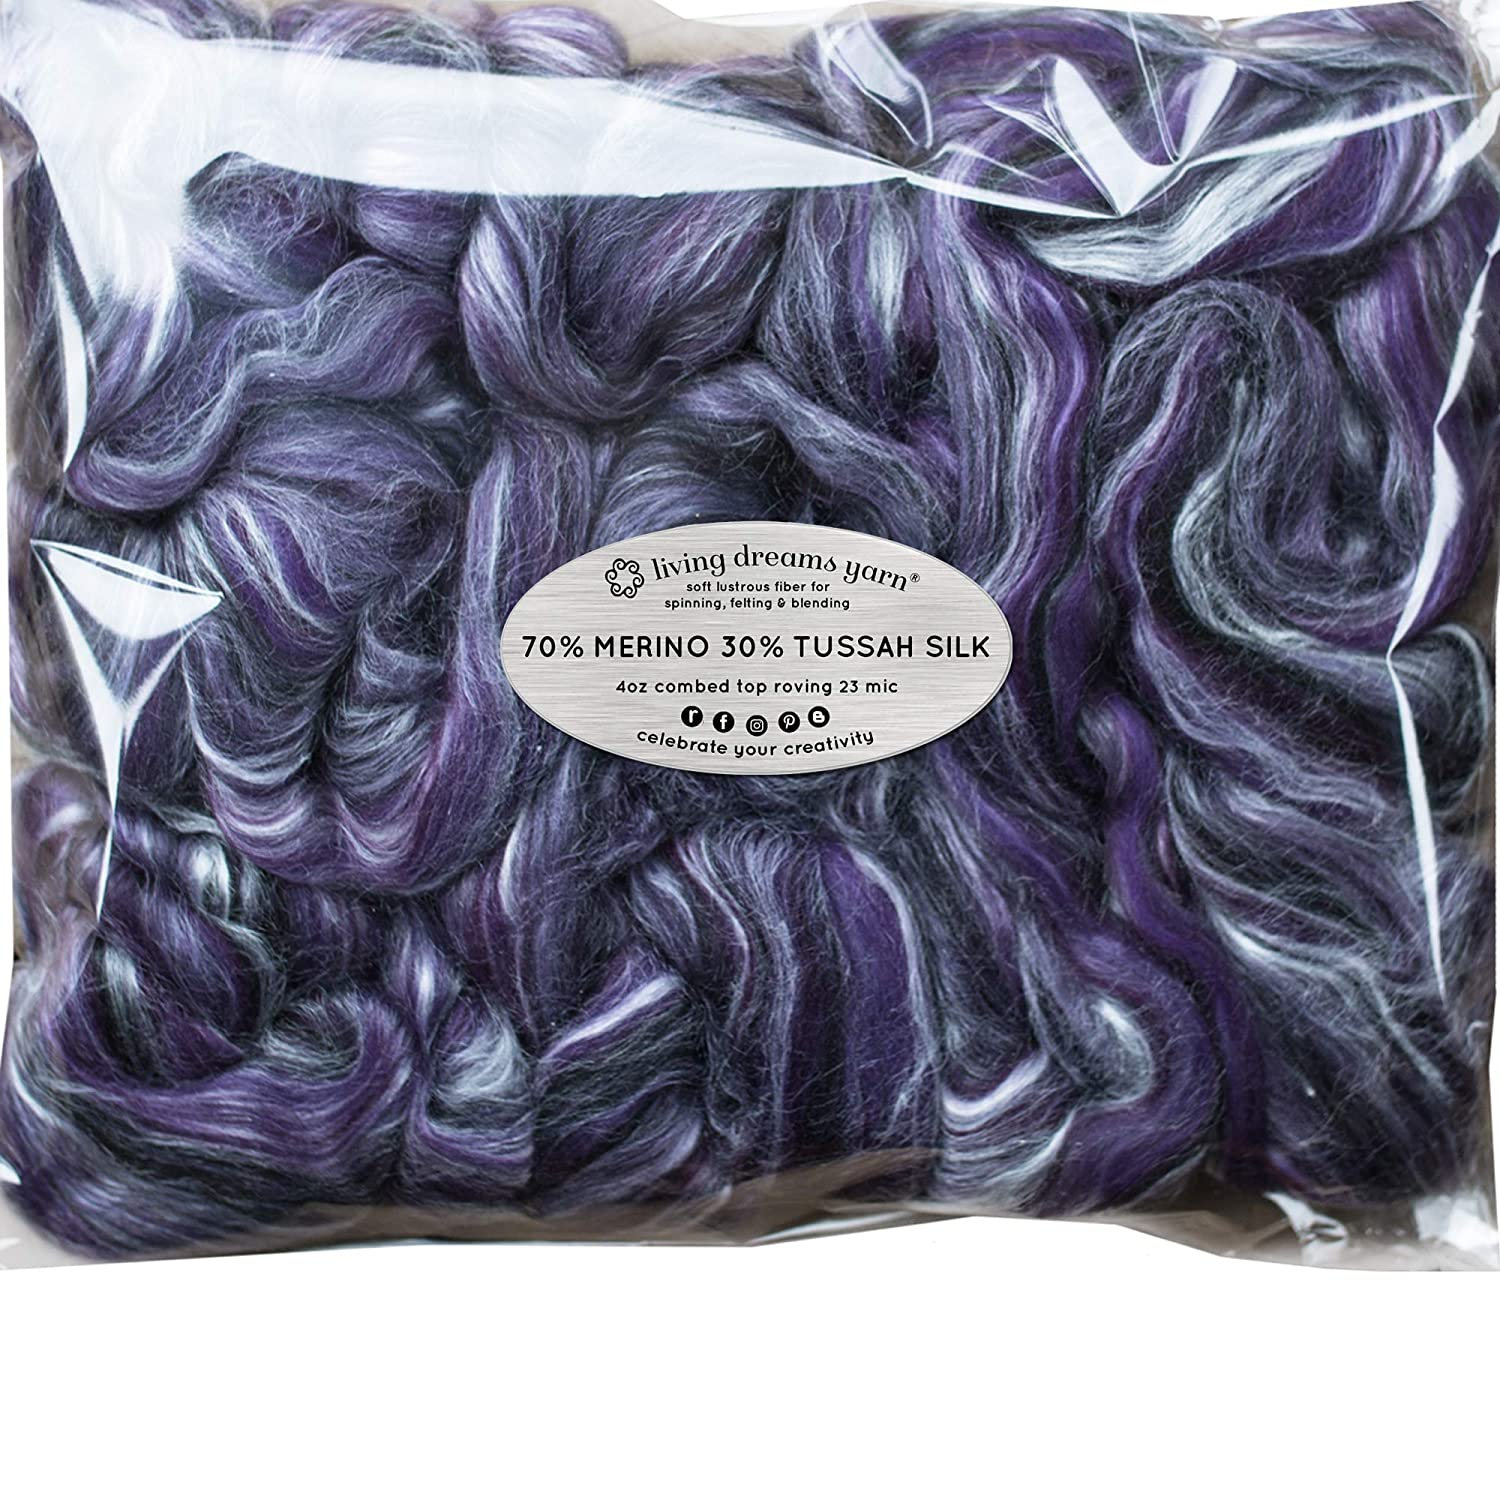 Silk Merino Fiber for Spinning. Super Soft Combed Top Wool Roving for Hand Spinning, Wet Felting, Nuno Felting, Needle Felting, Soap Making, Paper Making and Embellishments. Night Out Living Dreams Yarn GBFibMTSSnightout